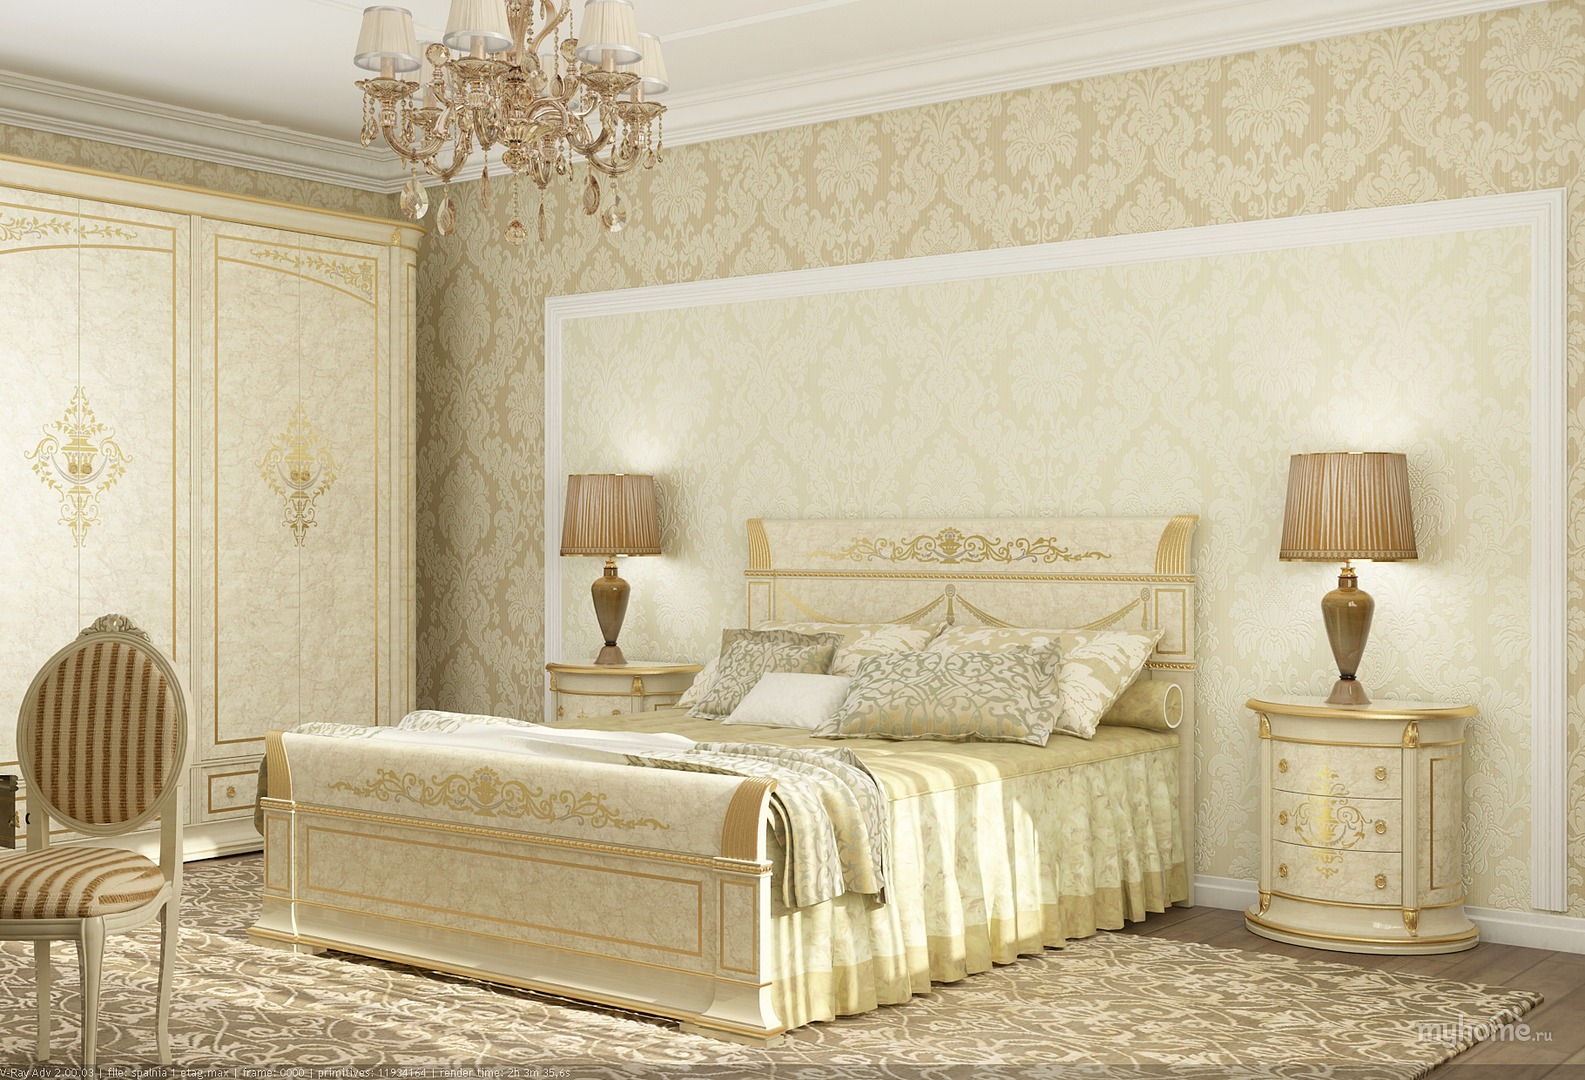 Beige and golden vectorian bedroom interior design and furniture sets